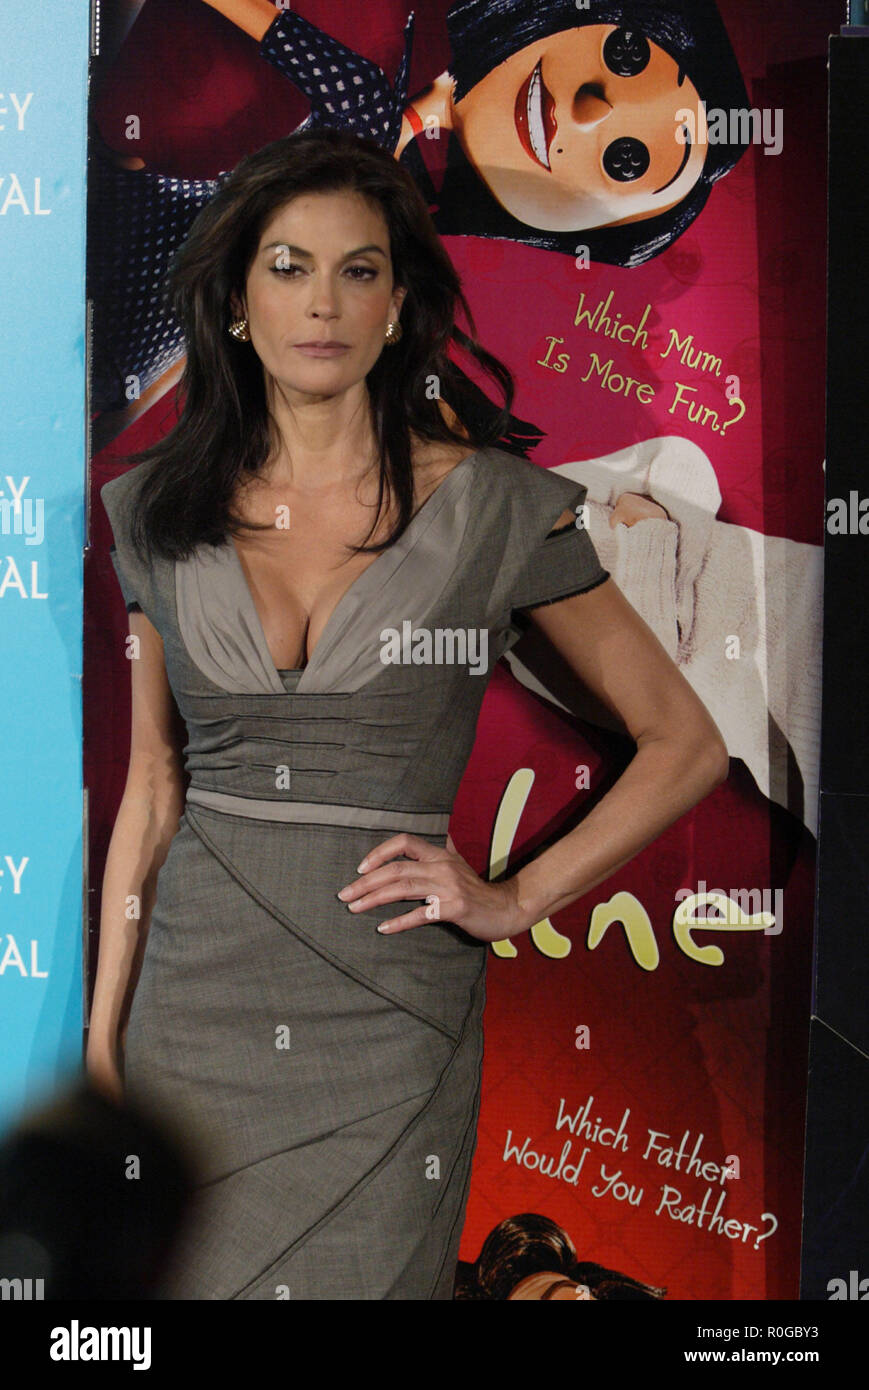 Teri Hatcher Attends The Premiere Of Coraline With Her Daughter Emerson Hatcher As Part Of The Sydney Film Festival Sydney Australia 10 06 09 Stock Photo Alamy